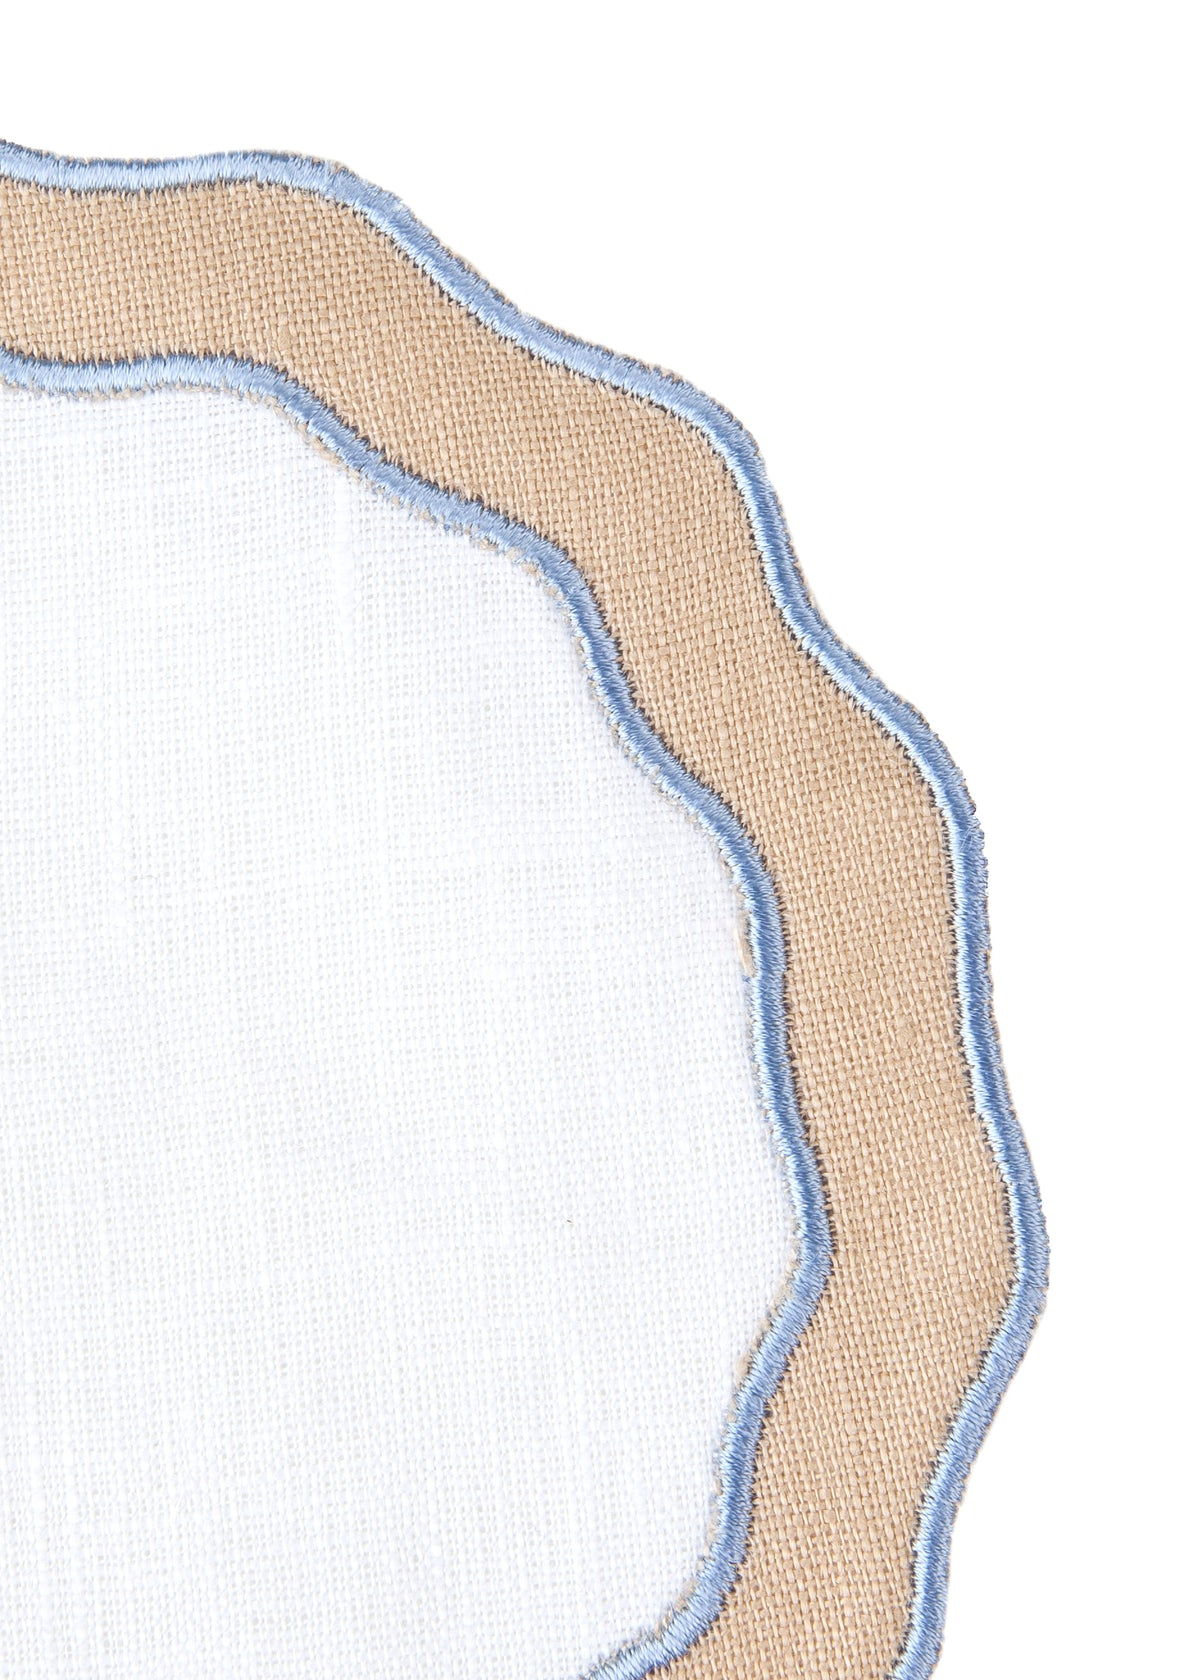 Applique Round Cocktail Napkin